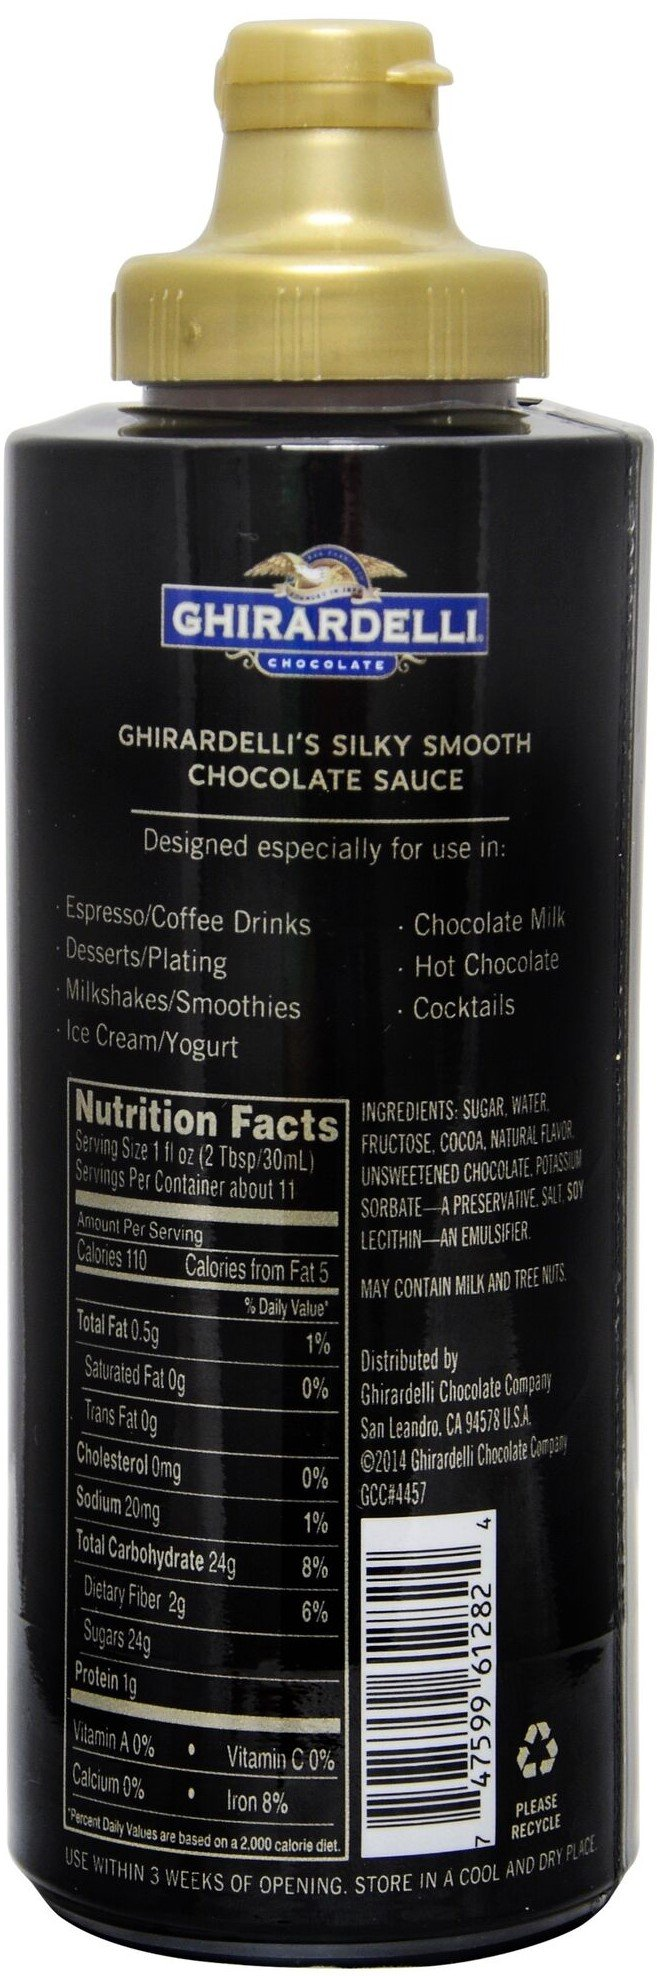 Ghirardelli - 16 Ounce Black Label, 16 Ounce Vanilla, 17 Ounce Caramel, 17 Ounce Sea Salt Caramel Flavored Sauce (Set of 4) - with Limited Edition Measuring Spoon by Ghirardelli (Image #4)